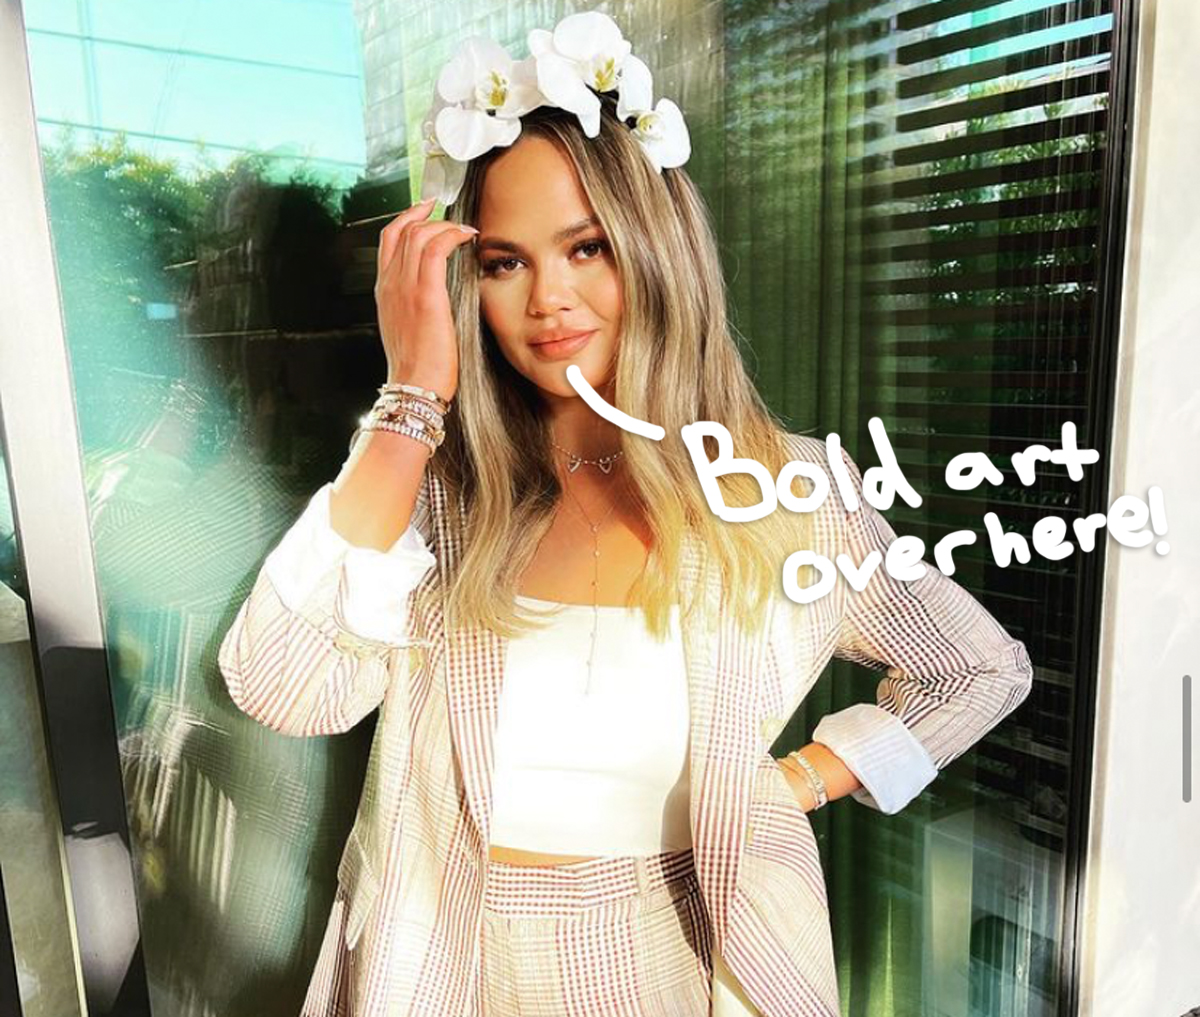 Chrissy Teigen Shows Off New Finger Tattoos -- Check Out The Ink!